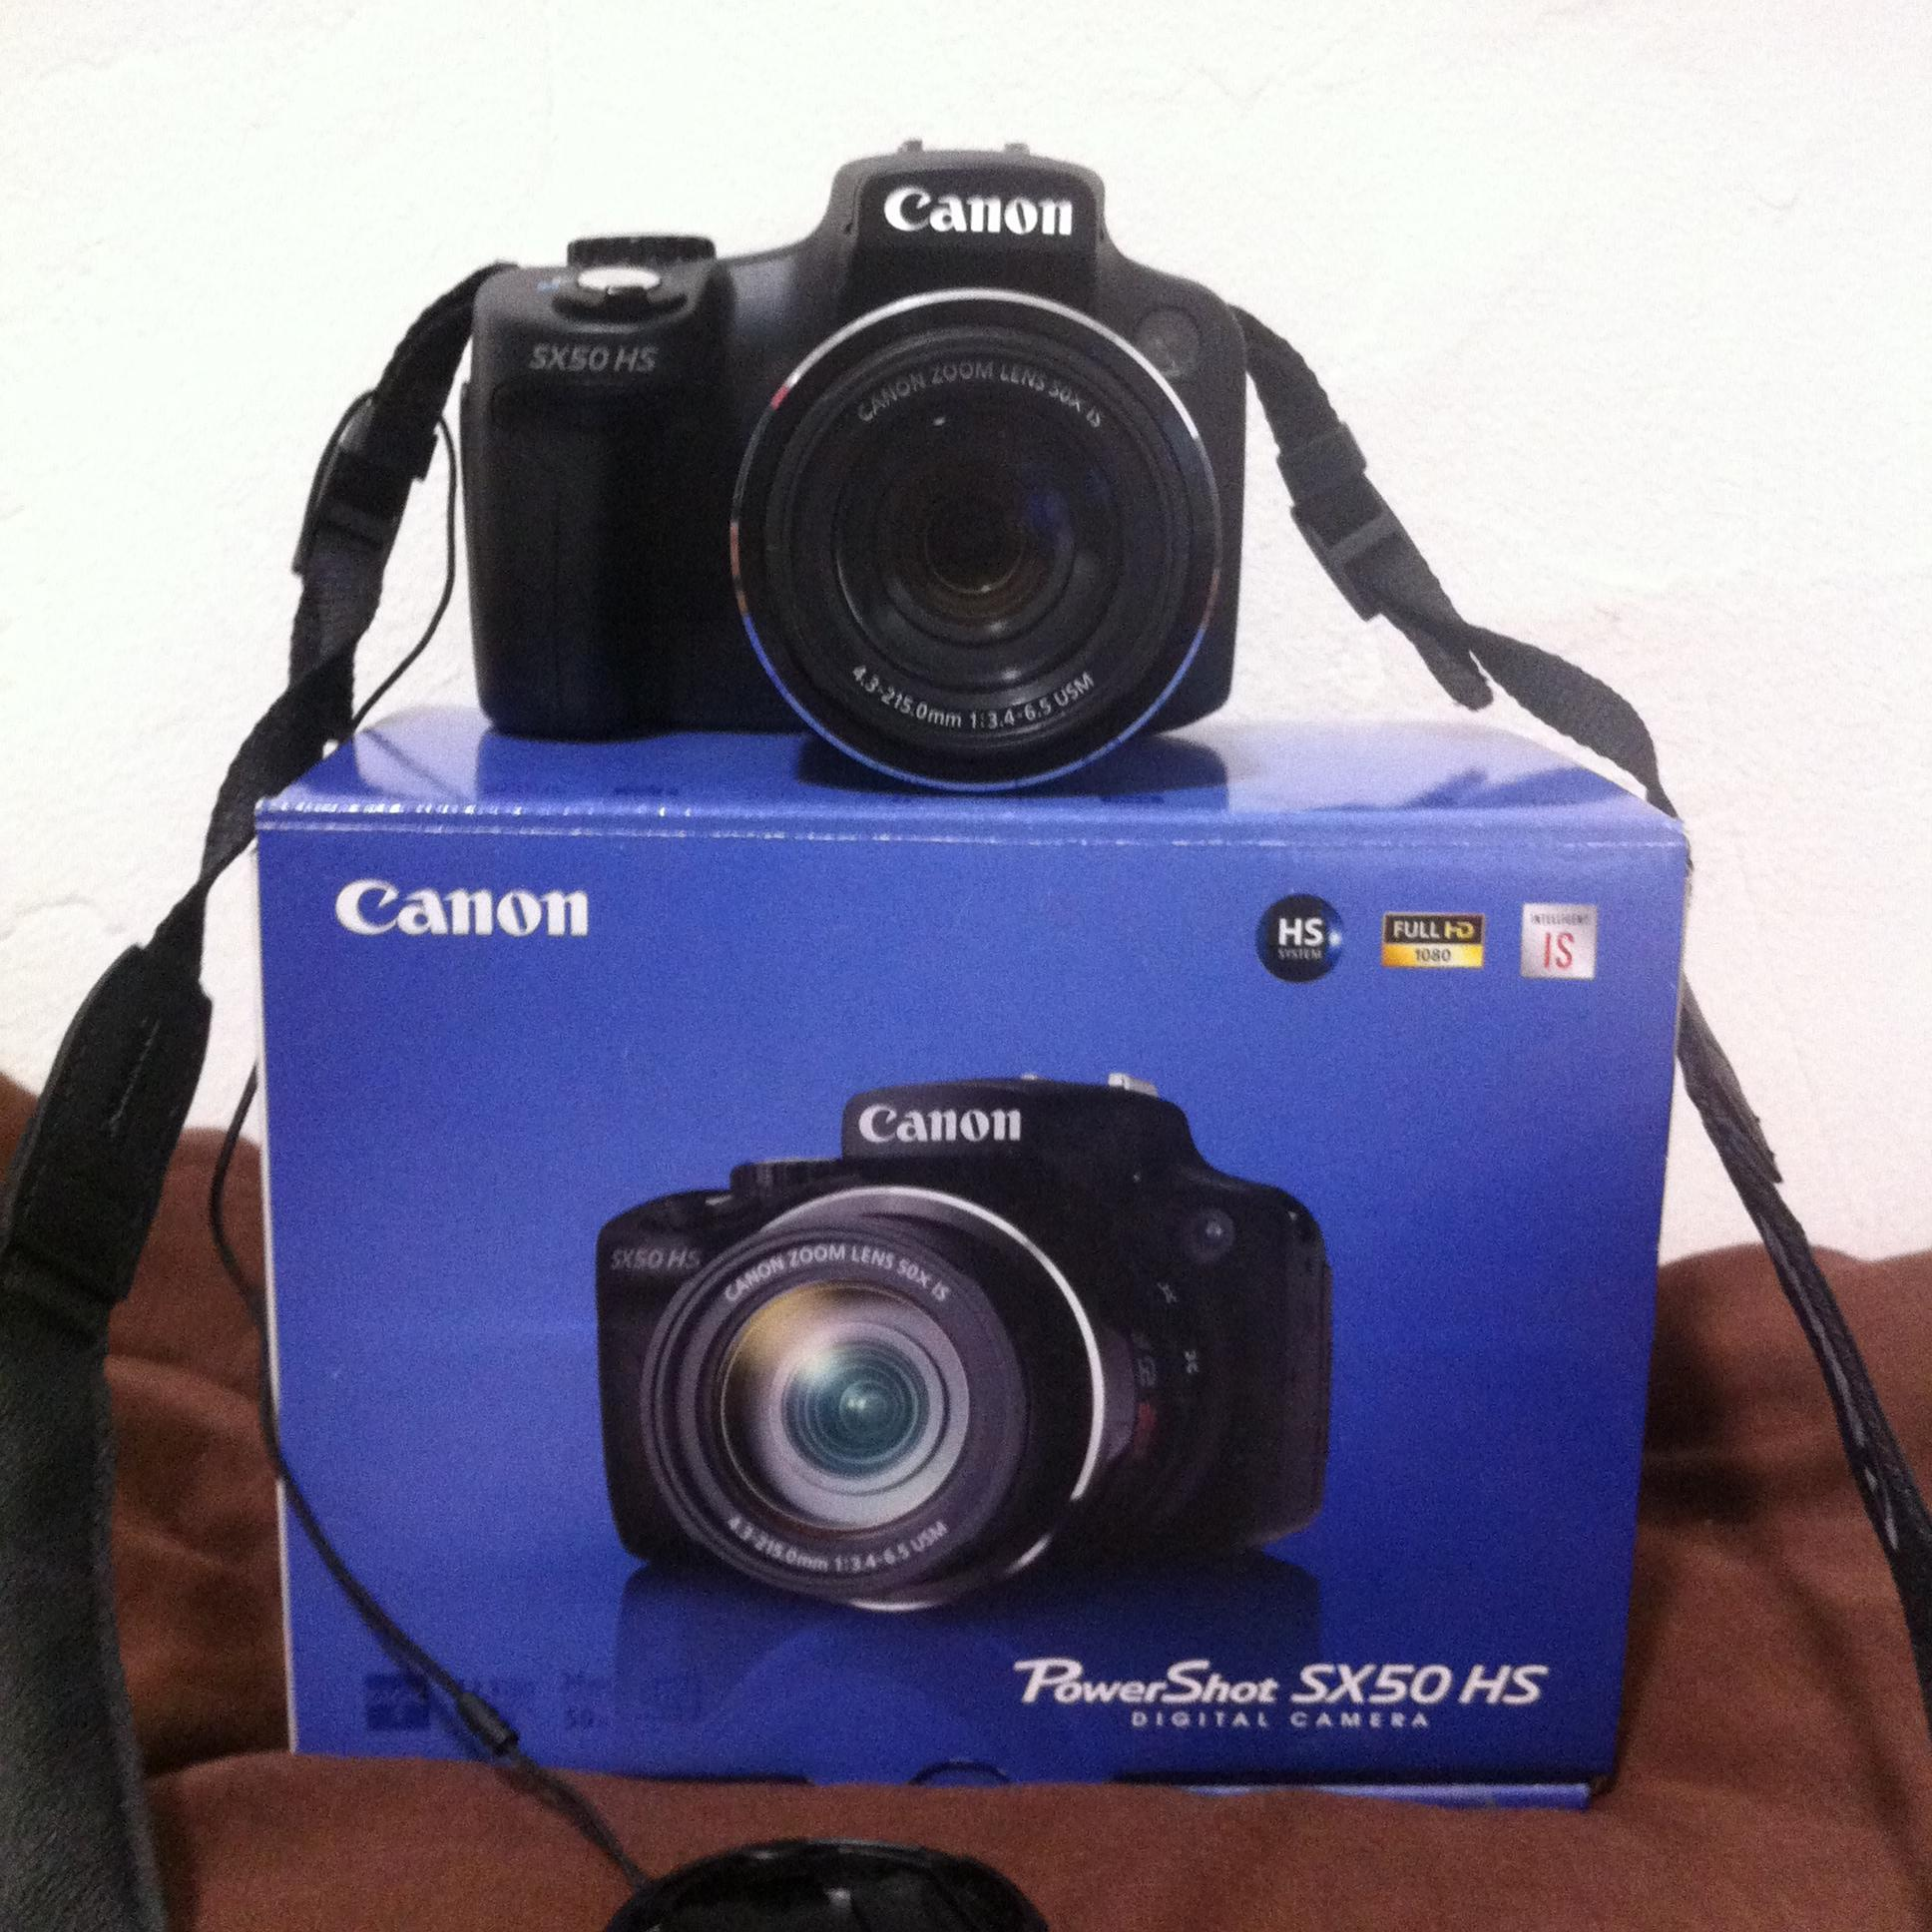 Canon PowerShot SX50 HS Digital Camera with 50x Ultra Wide